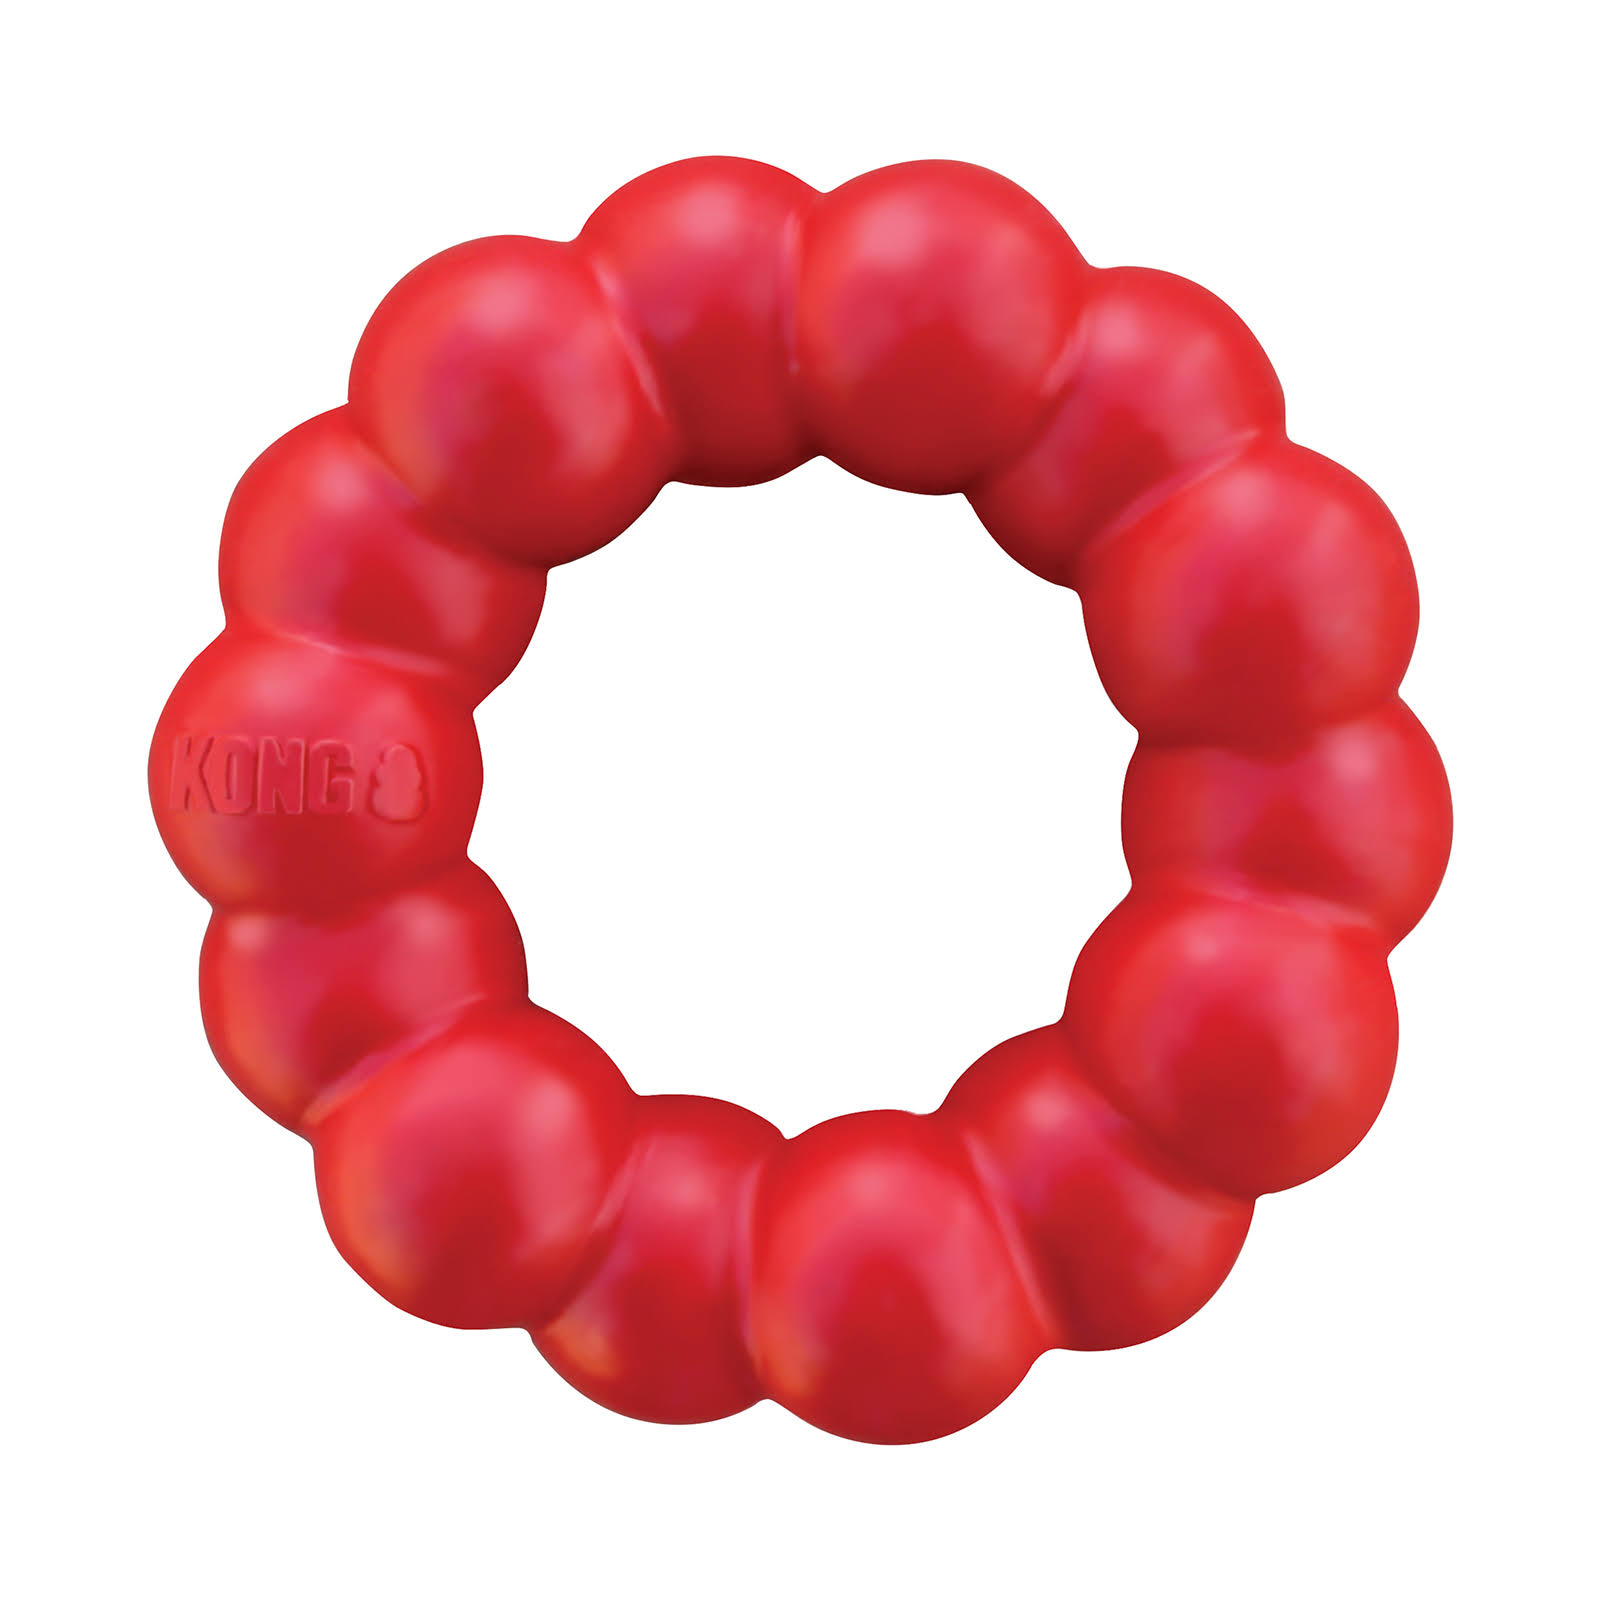 Kong Ring Chew Toy - Small/Medium